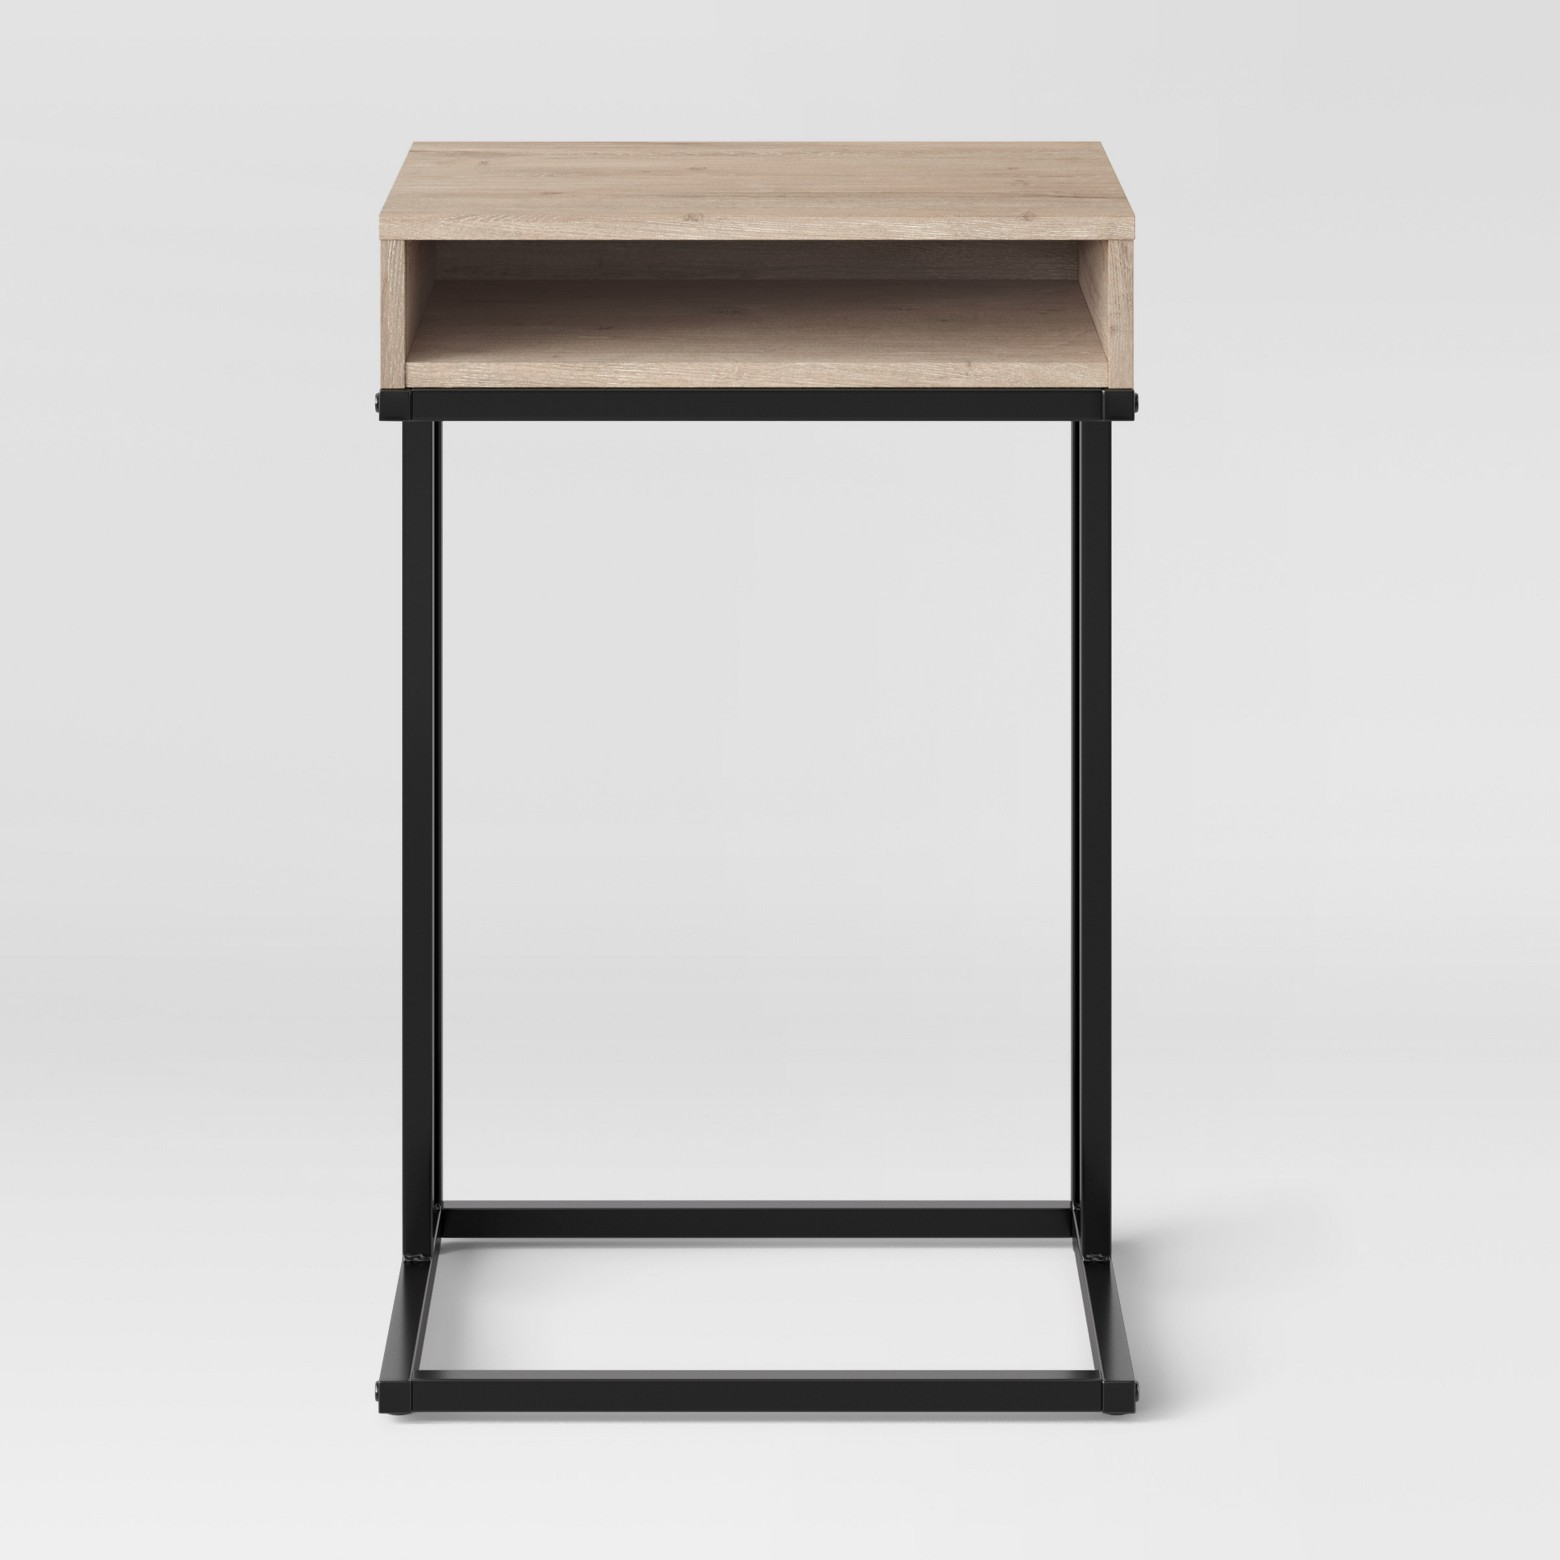 Design Board Small Space Living End Table.jpeg